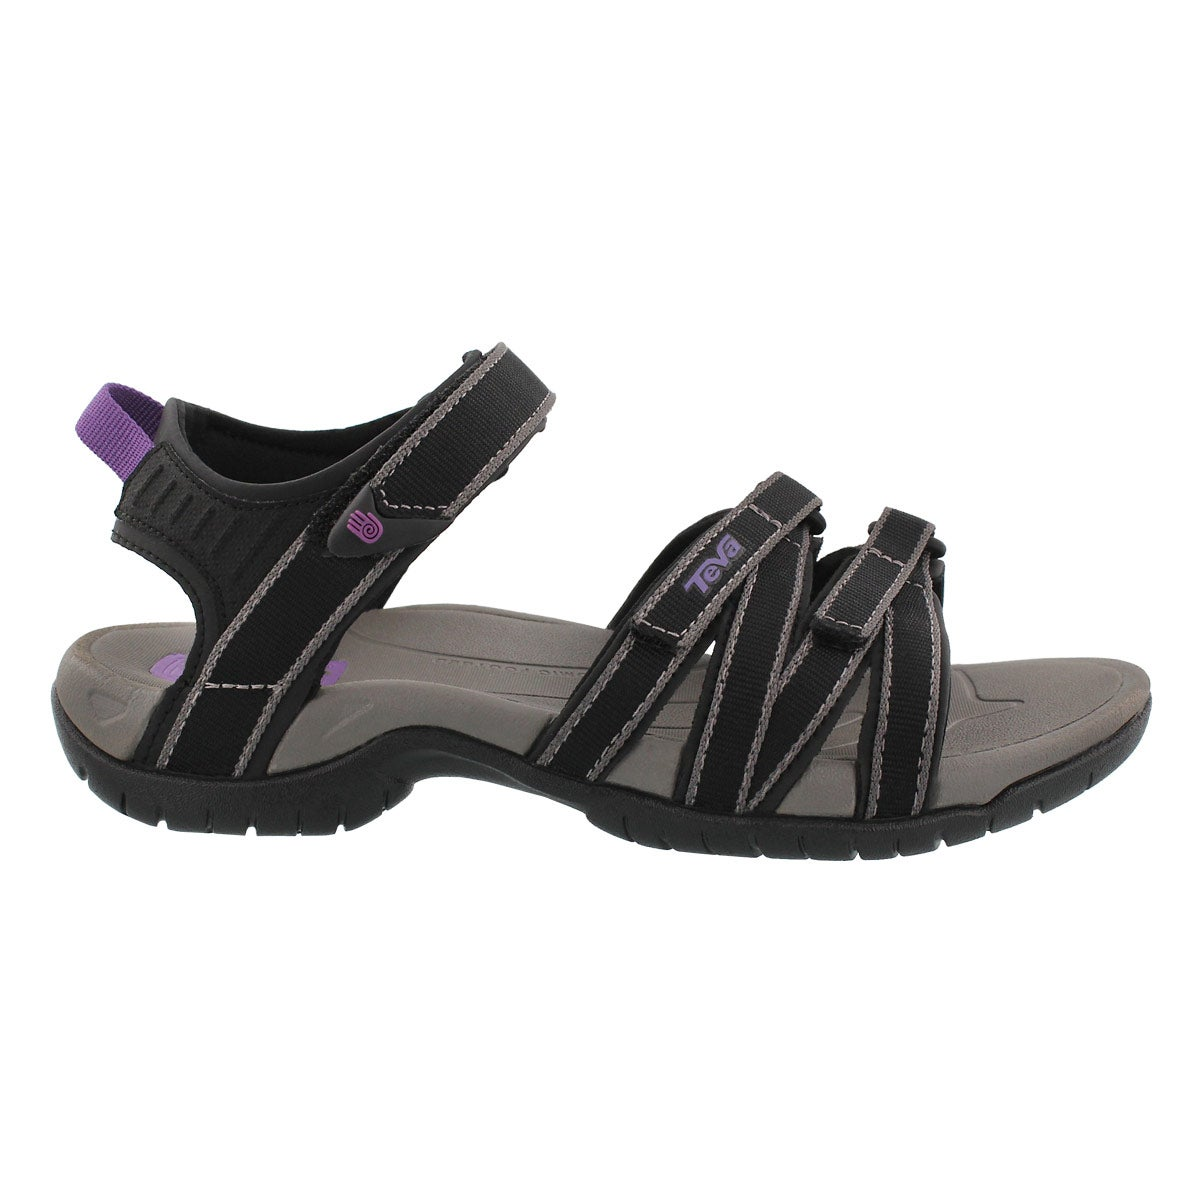 Lds Tirra black/grey sport sandal